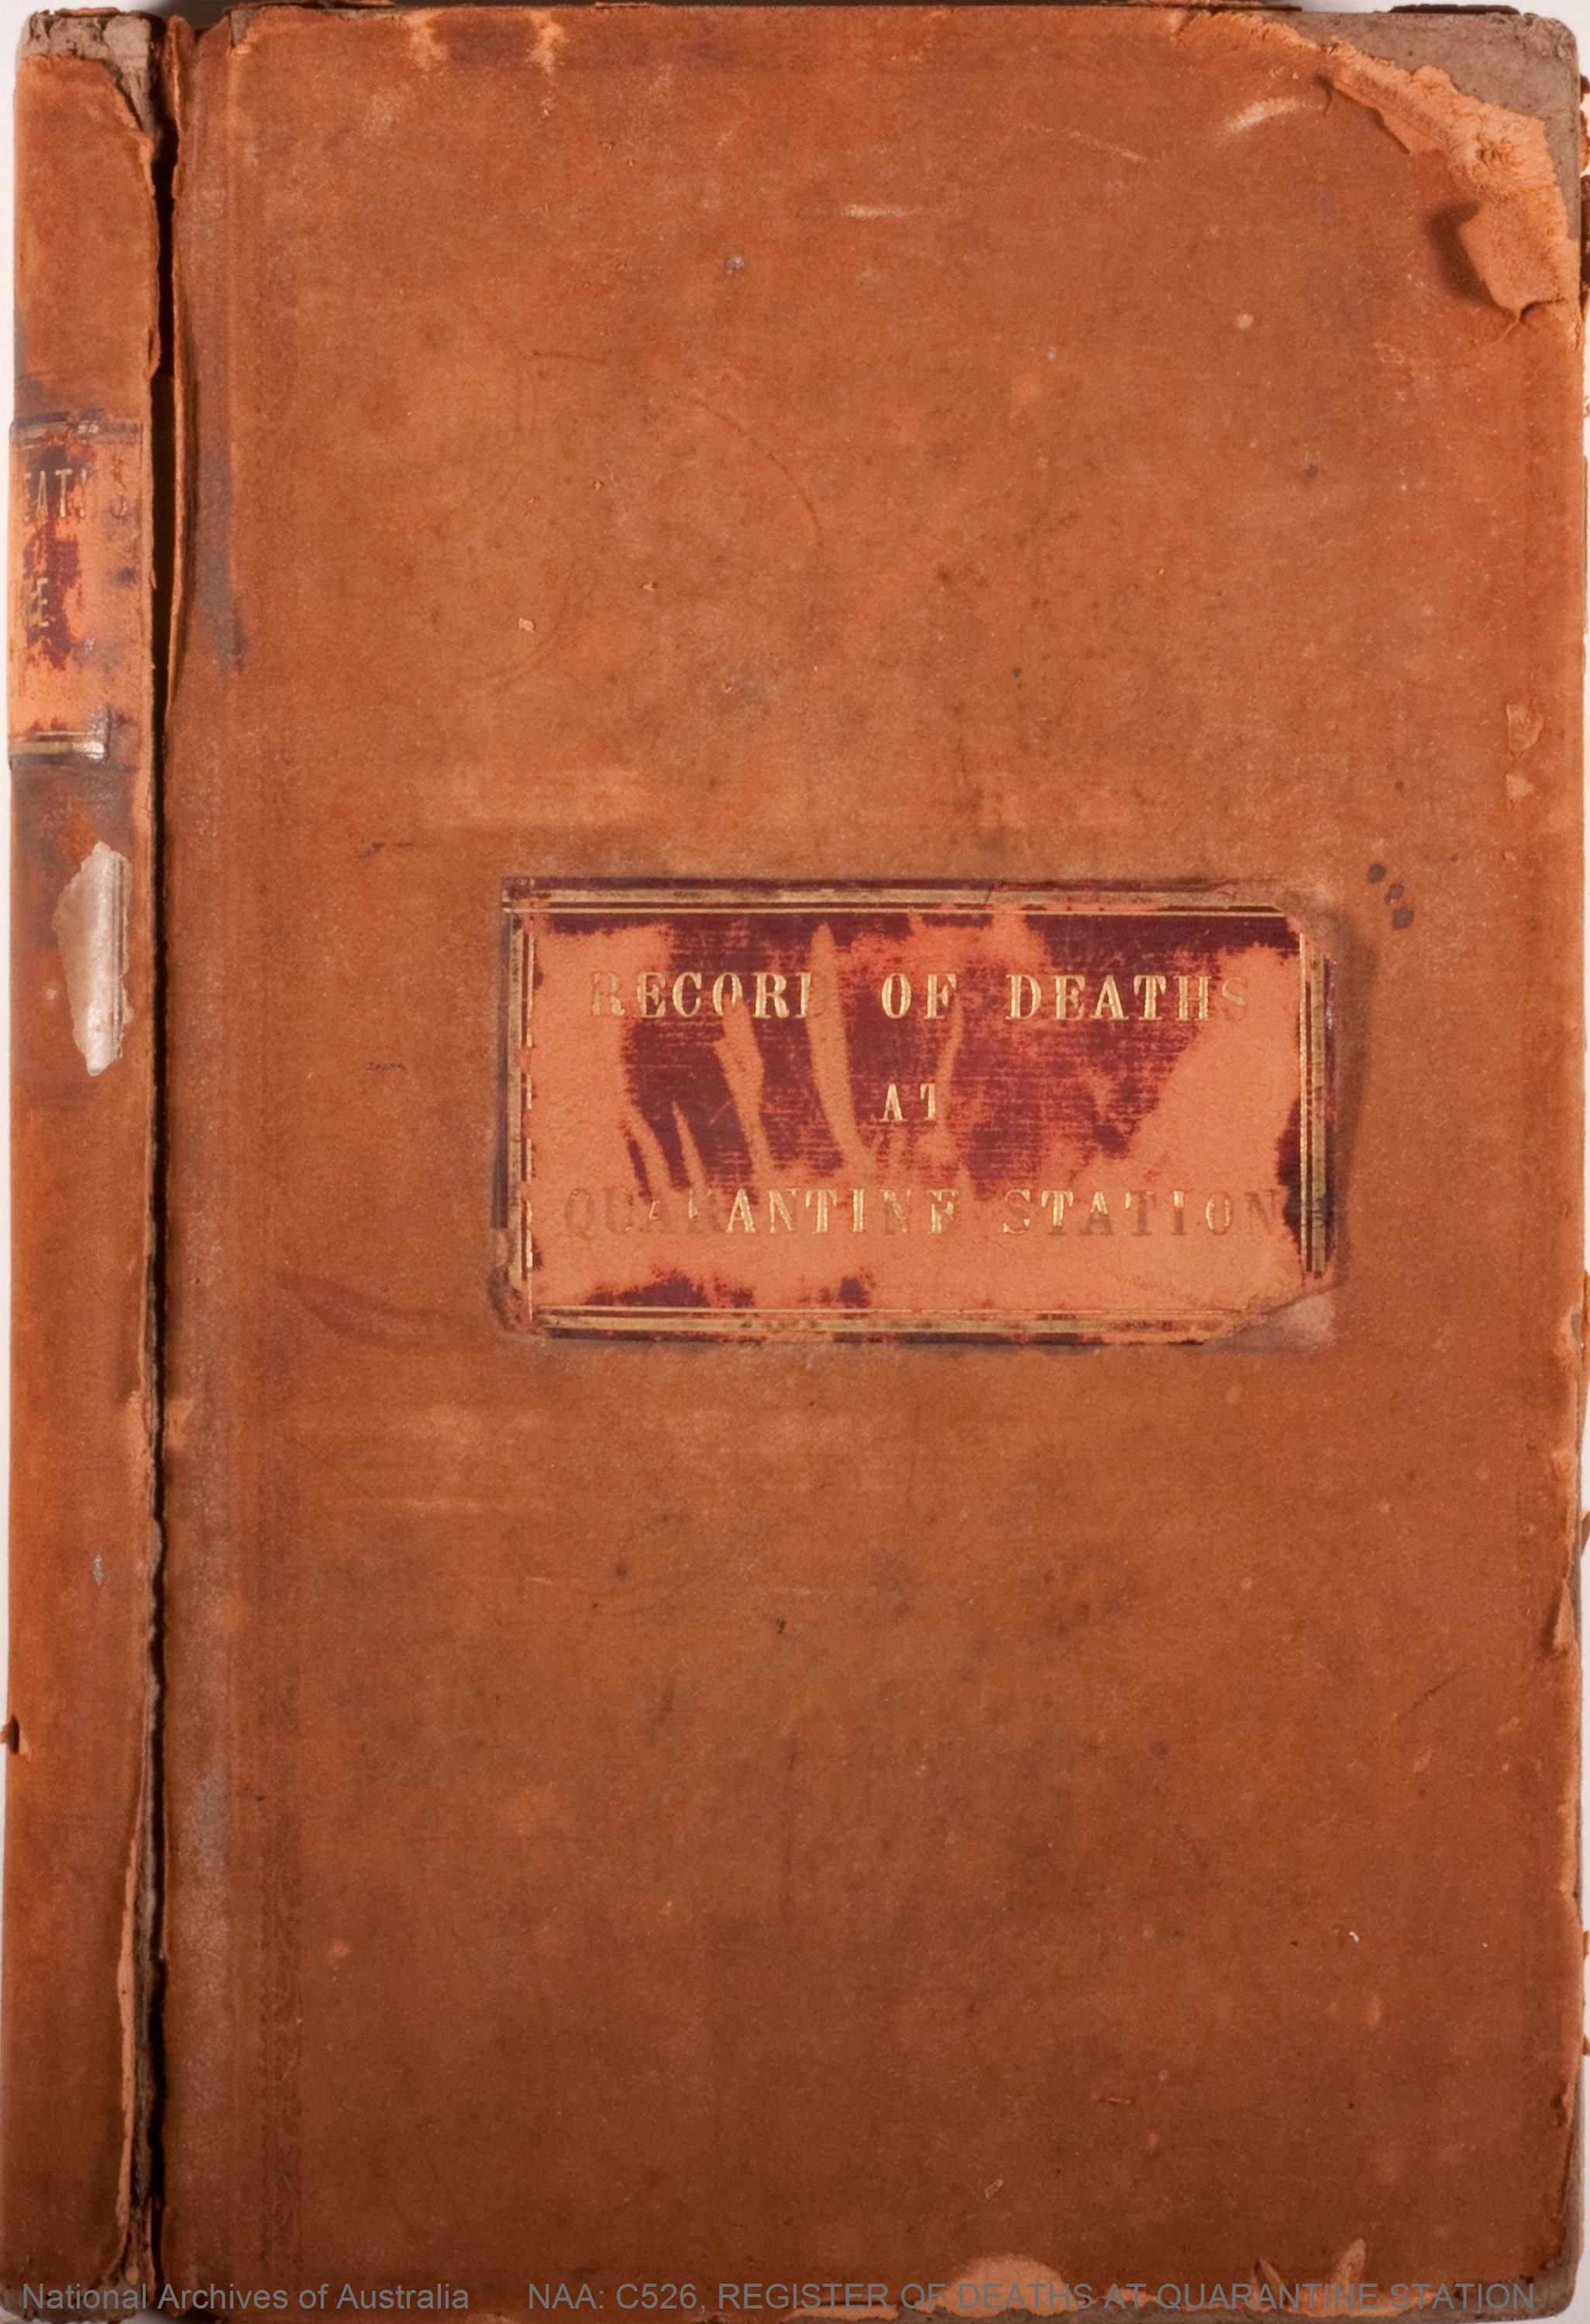 NAA: C526, REGISTER OF DEATHS AT QUARANTINE STATION